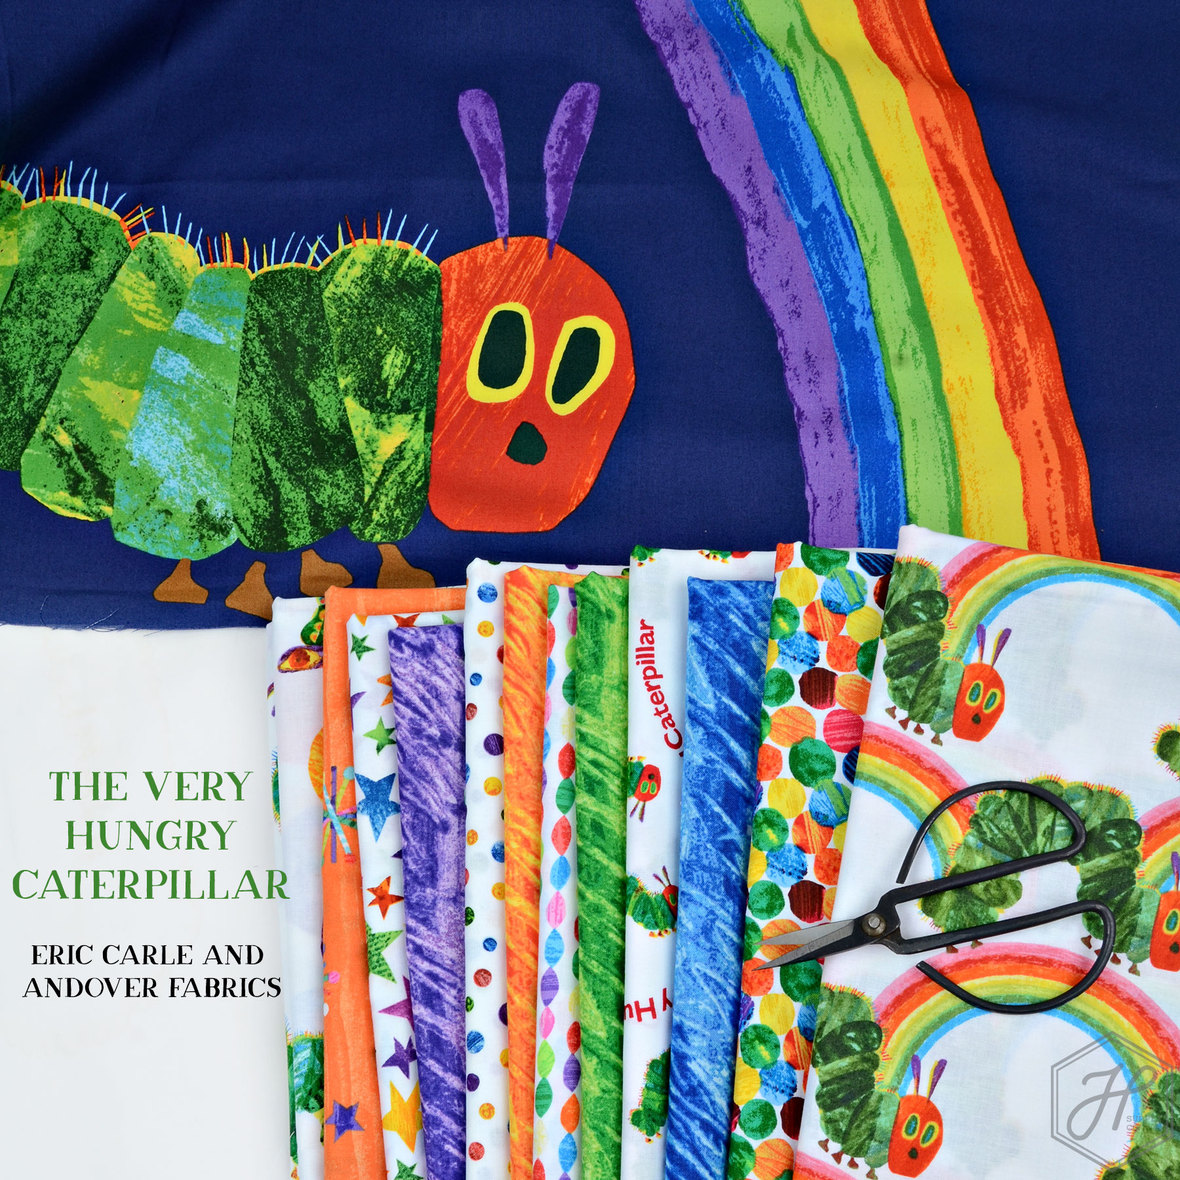 The-Very-Hungry-Caterpillar-Eric-Carle-Fabric-for-Andover-at-Hawthorne-Supply-Co